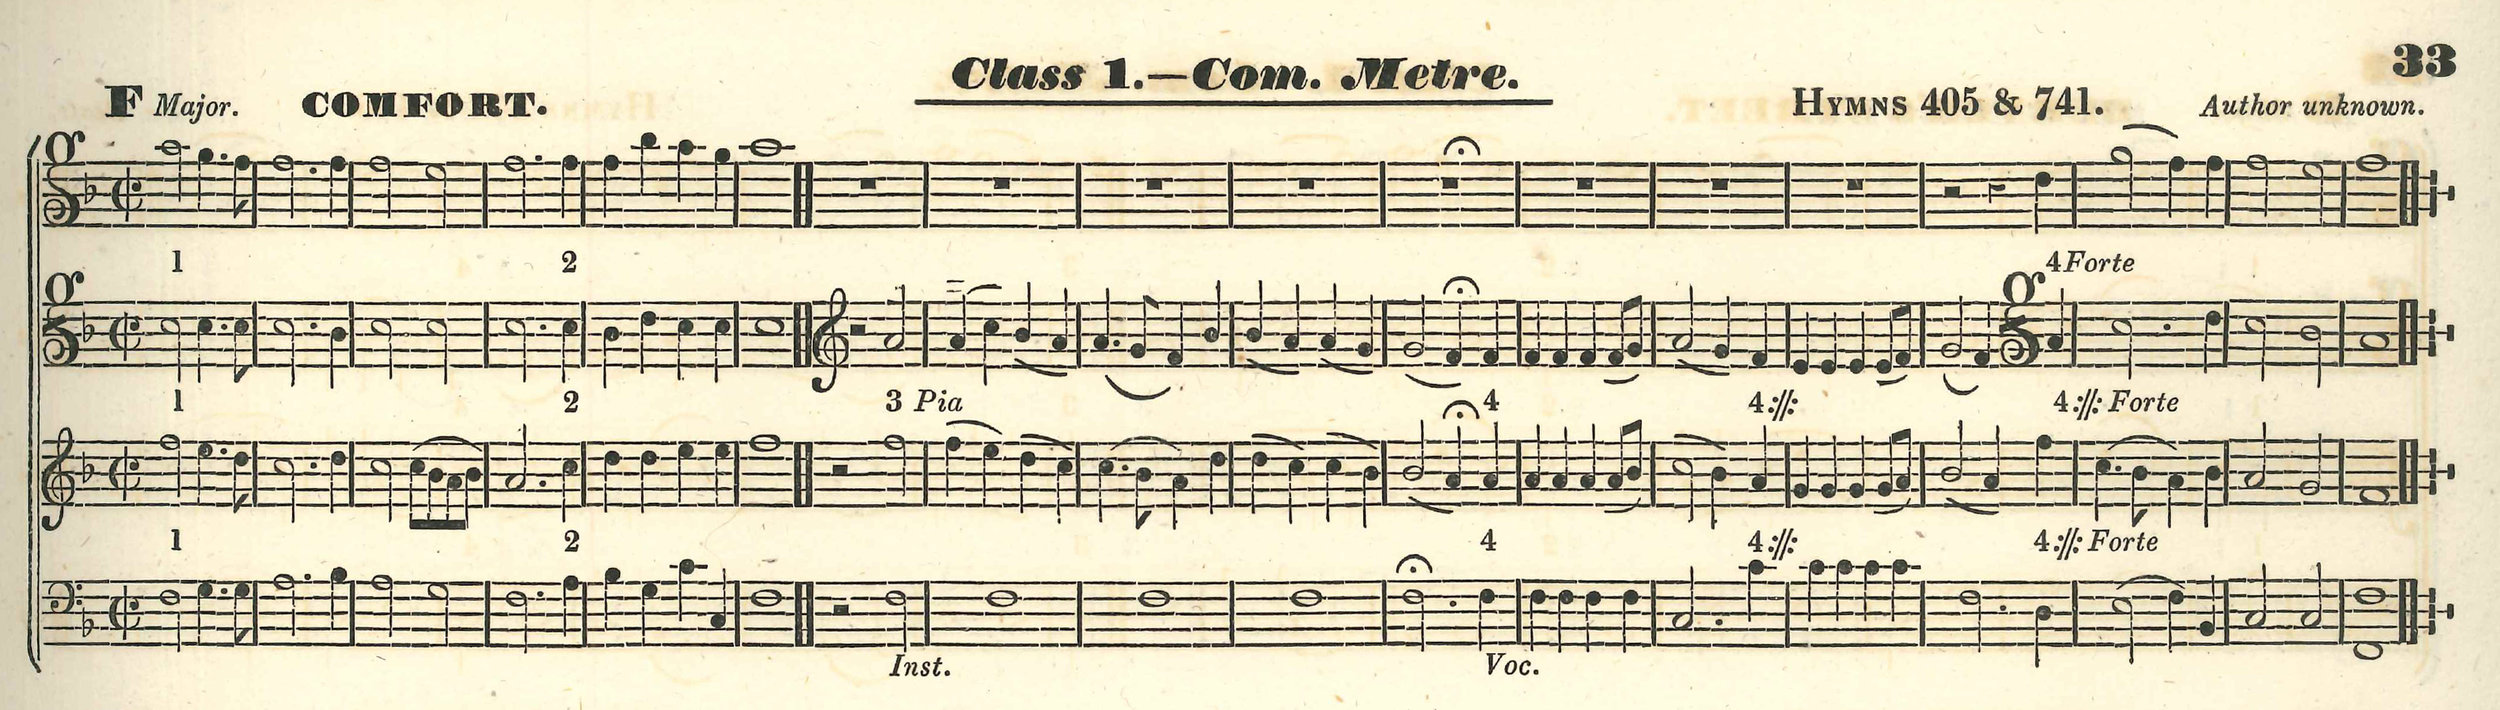 Fig. 3.  Thomas Hawkes,  Collection of Tunes  (Watchet: Thomas Whitehorn, 1833). Melody in the third voice (tenor).